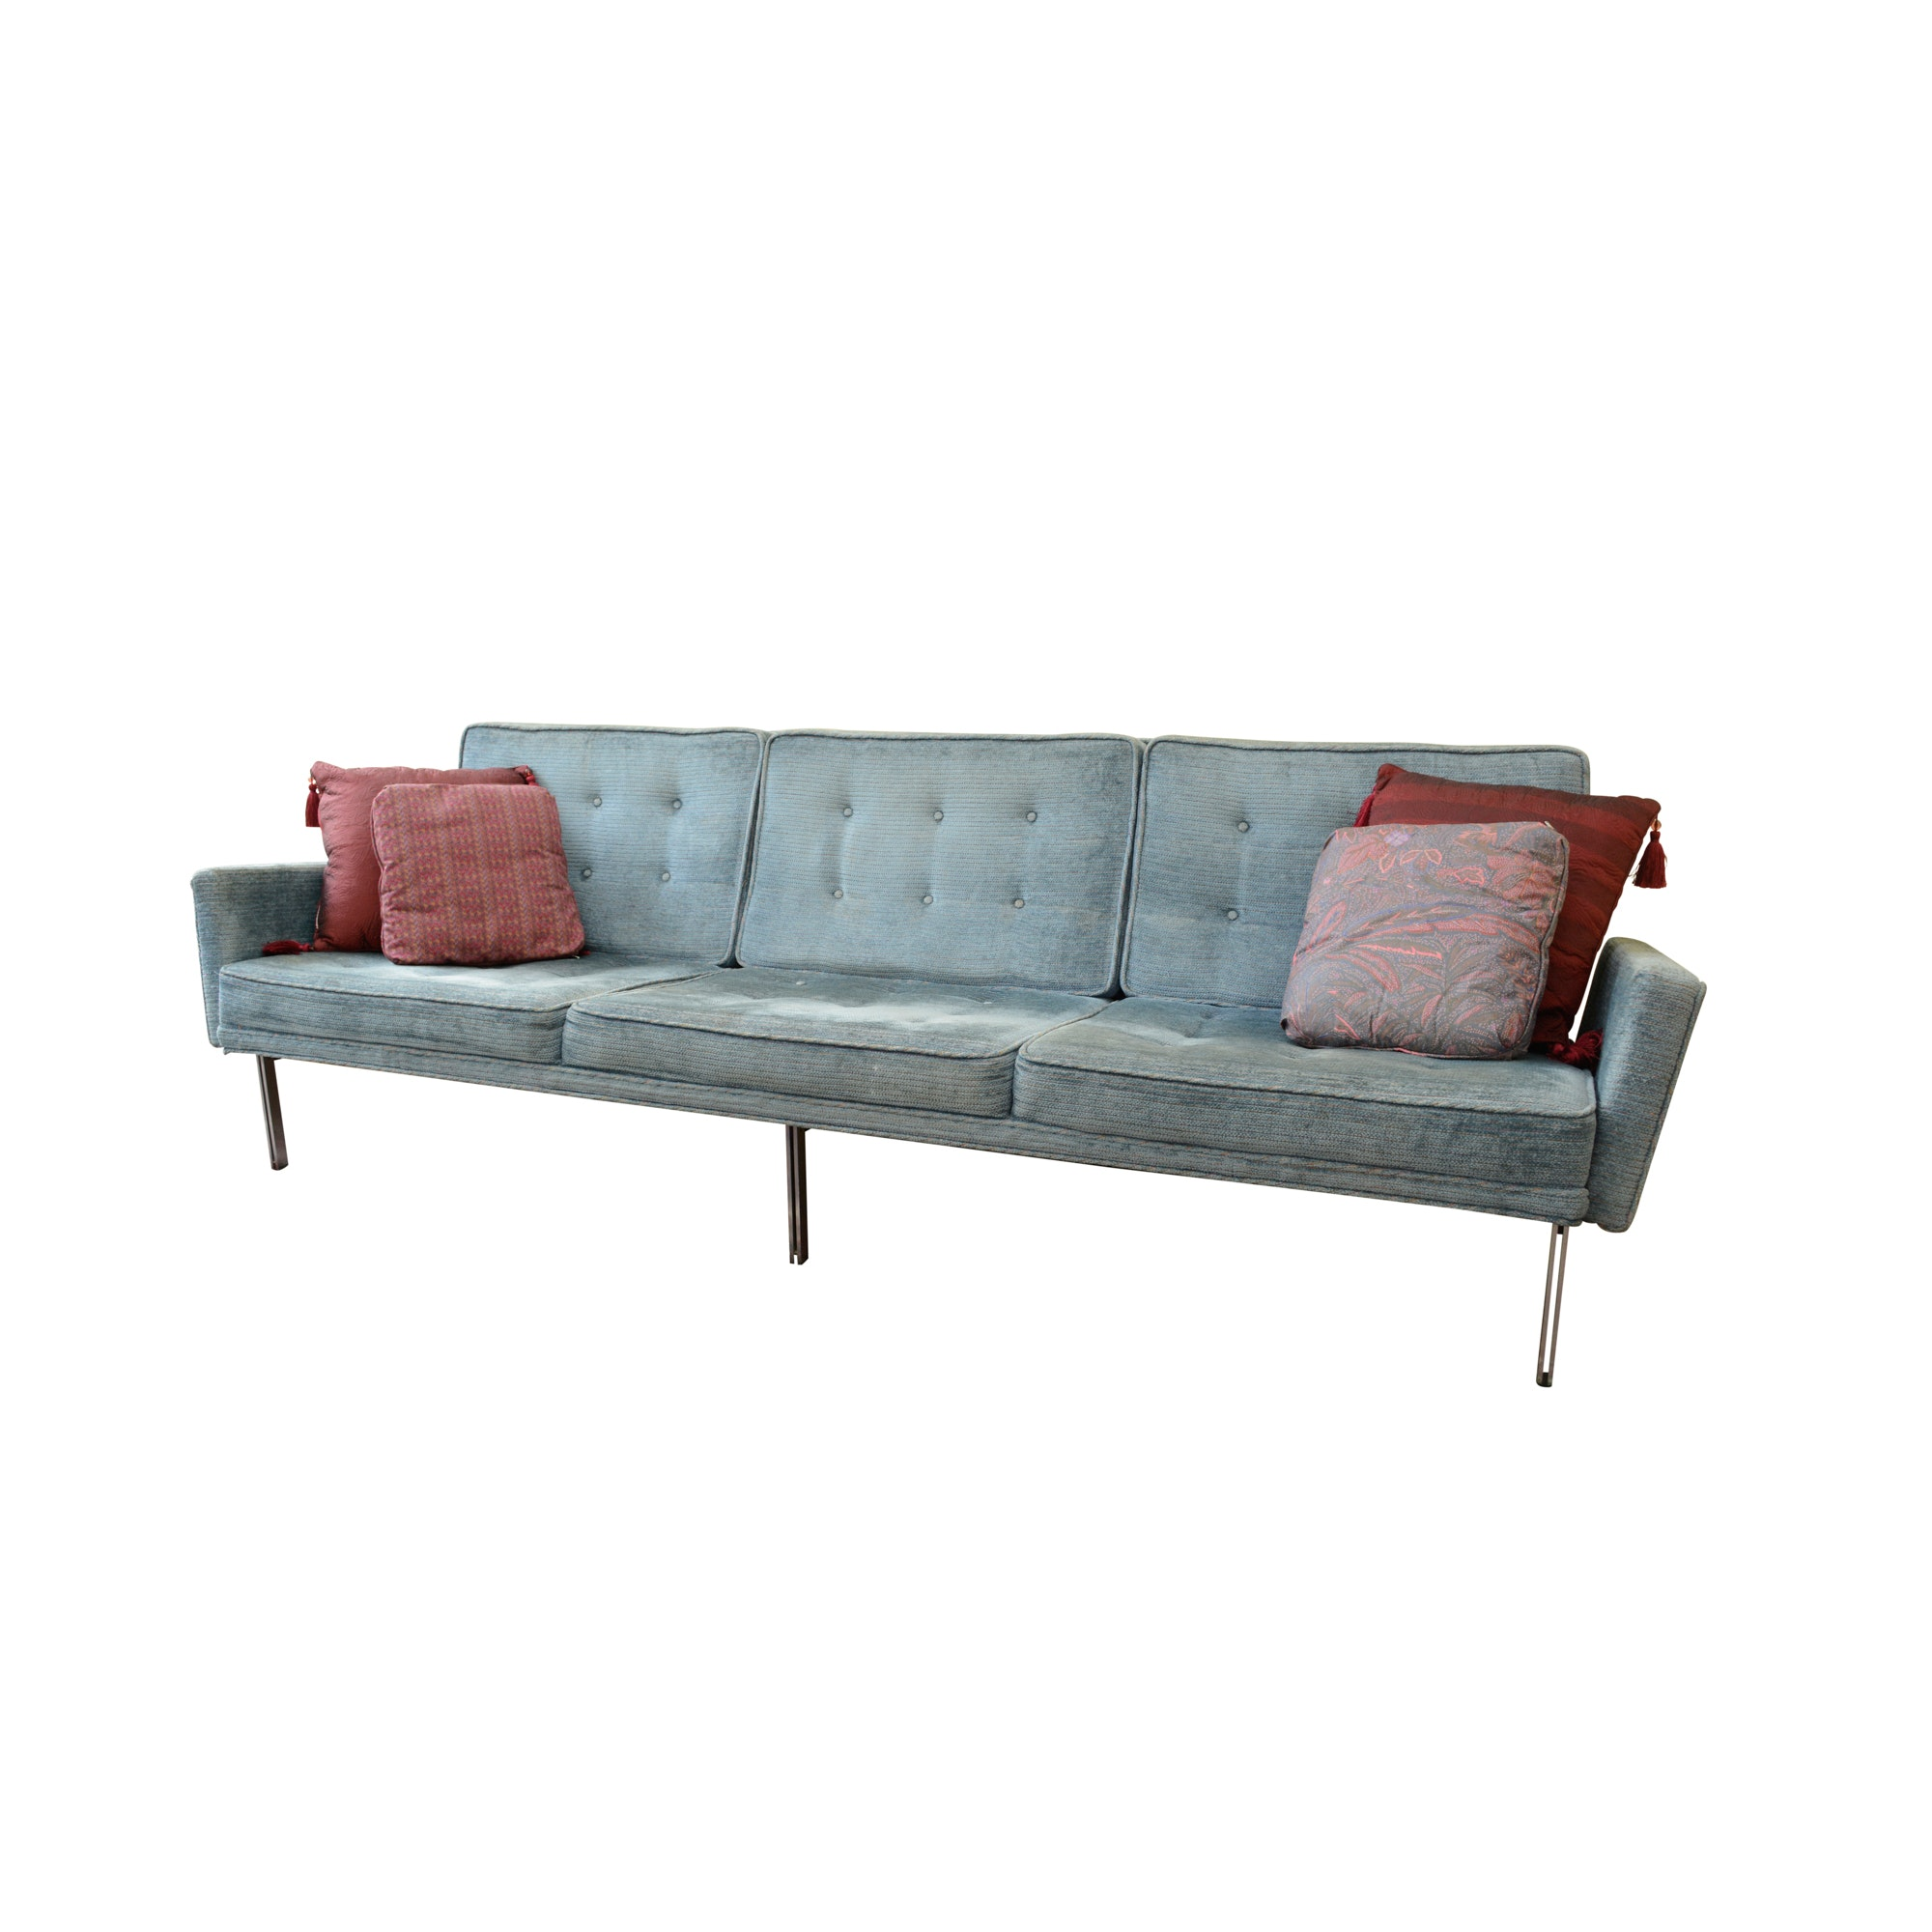 Simple Elegant Florence Knoll Mid Century Modern Parallel Bar Sofa Elegant - Amazing mid century sleeper sofa Photos